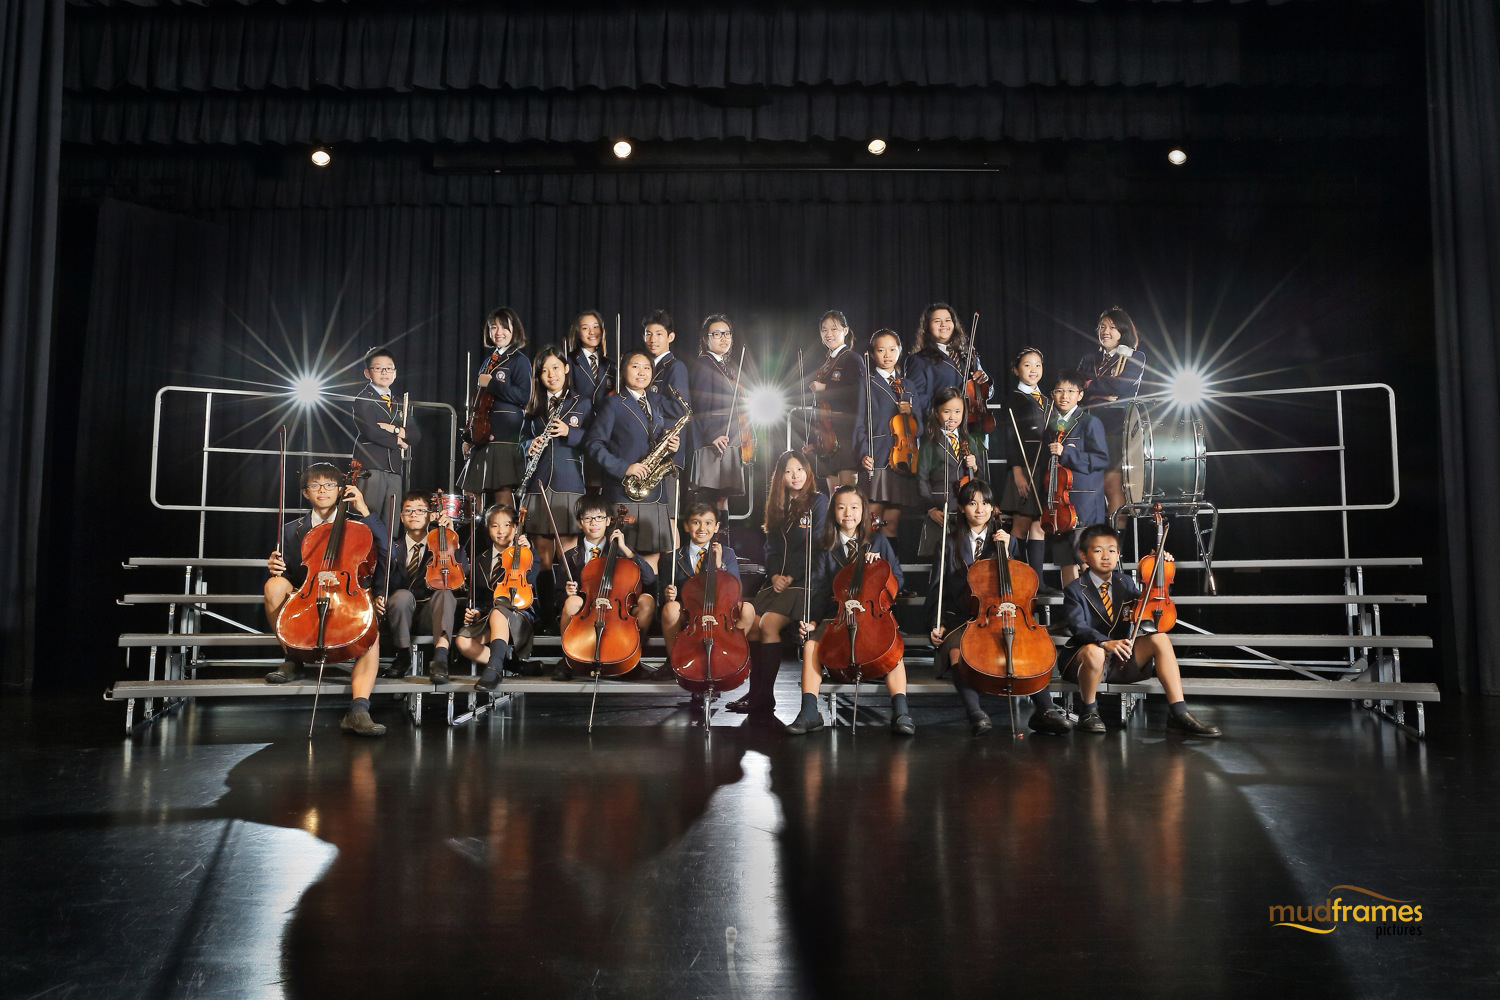 The British International School Senior Orchestra